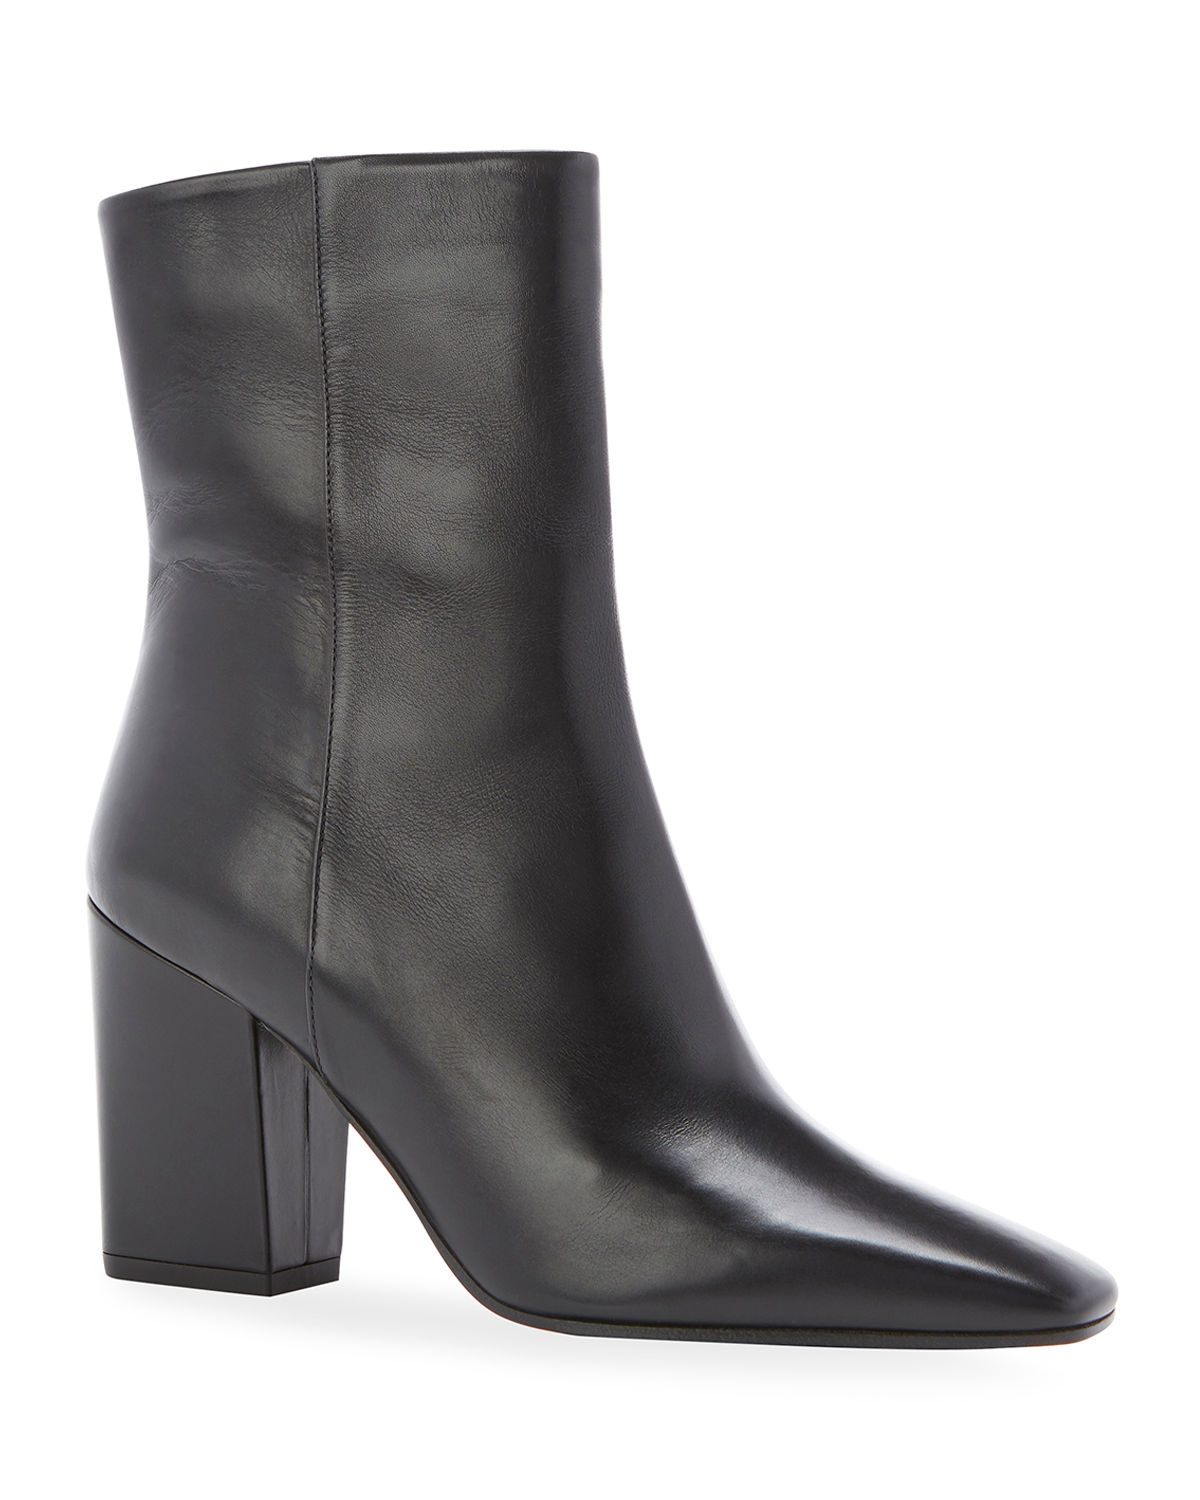 Winnie Square-Toe Leather Ankle Boots